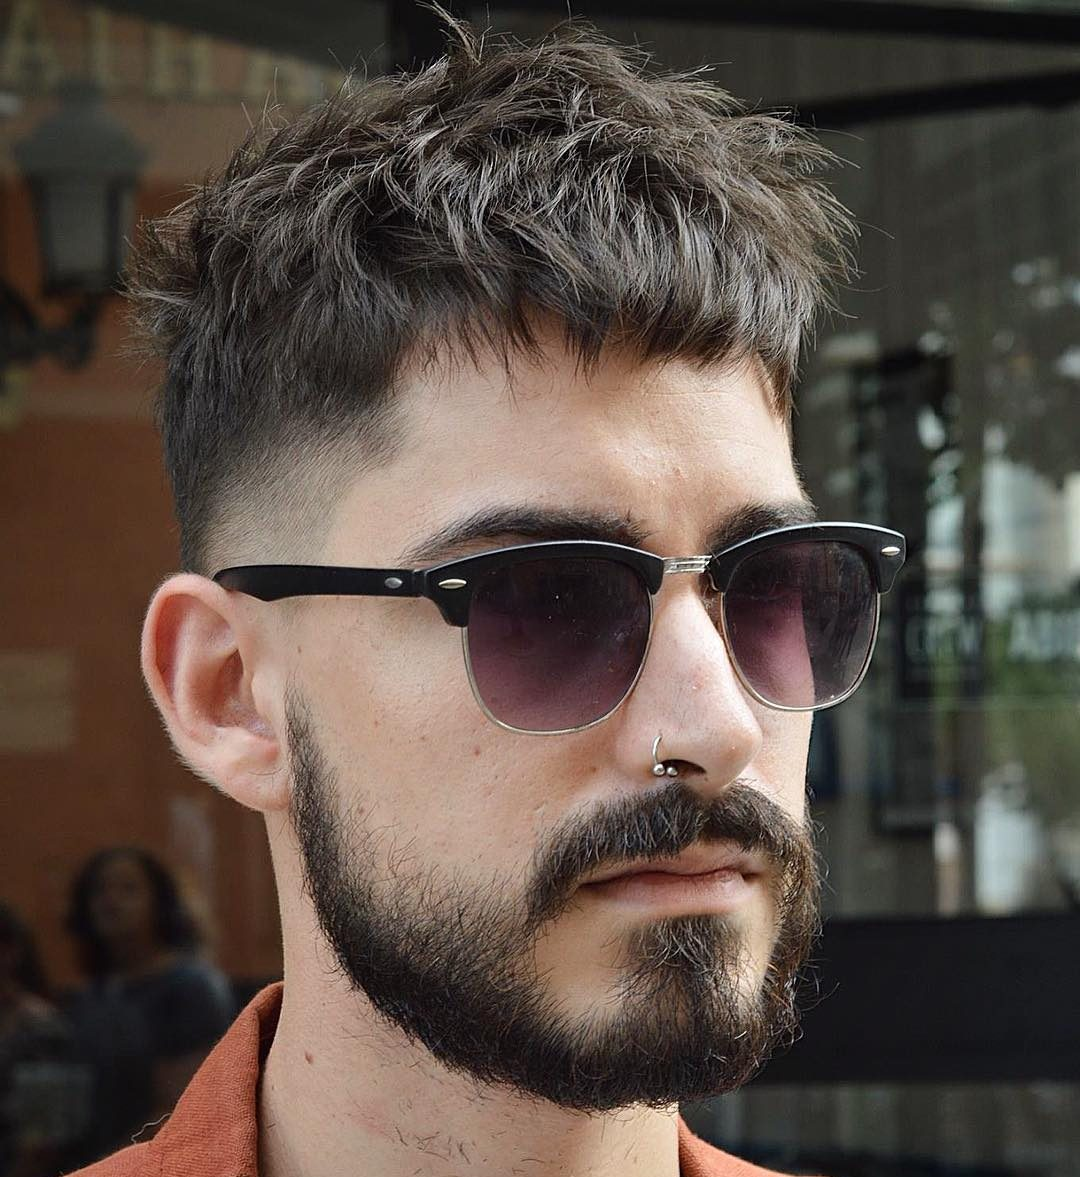 virogas.barber-messy-crop-haircut-short-hairstyle-for-men-2017-new-e1483567174419 Latest Hairstyles for Men- 25 New Hair Looks to Copy in 2018